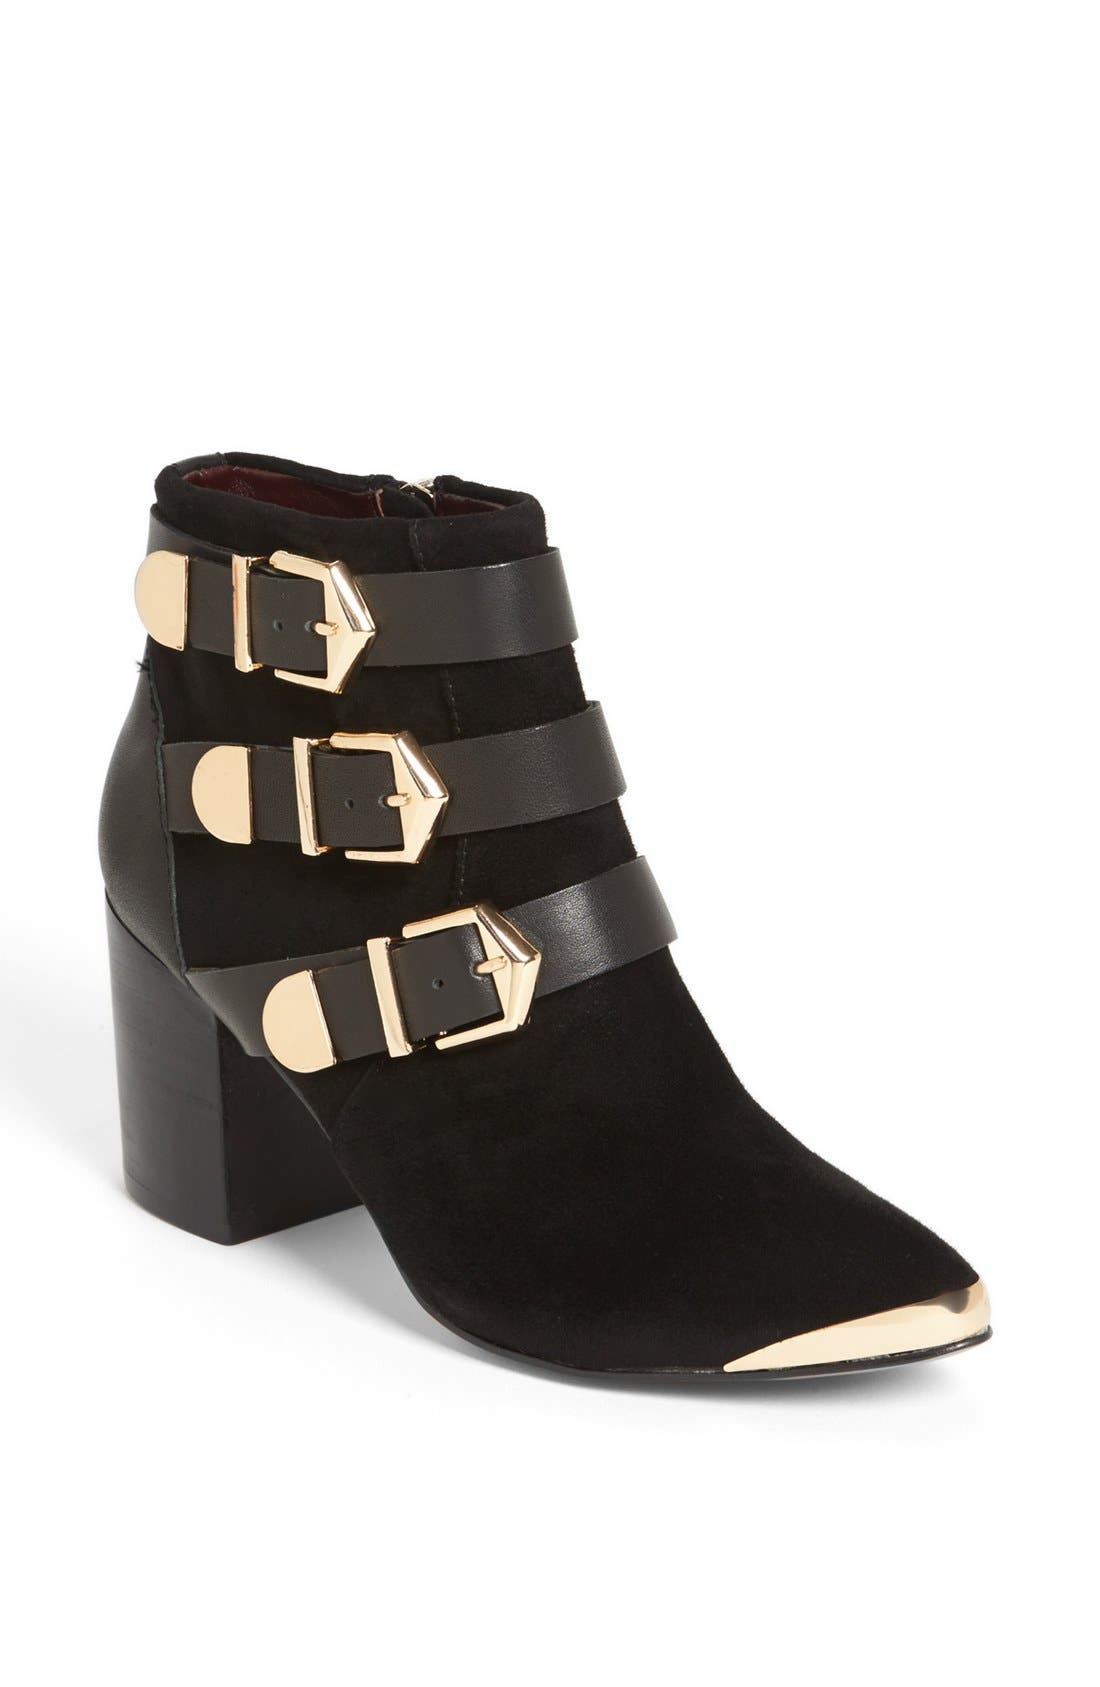 Main Image - REPORT Signature 'Fairfield' Pointed Toe Bootie